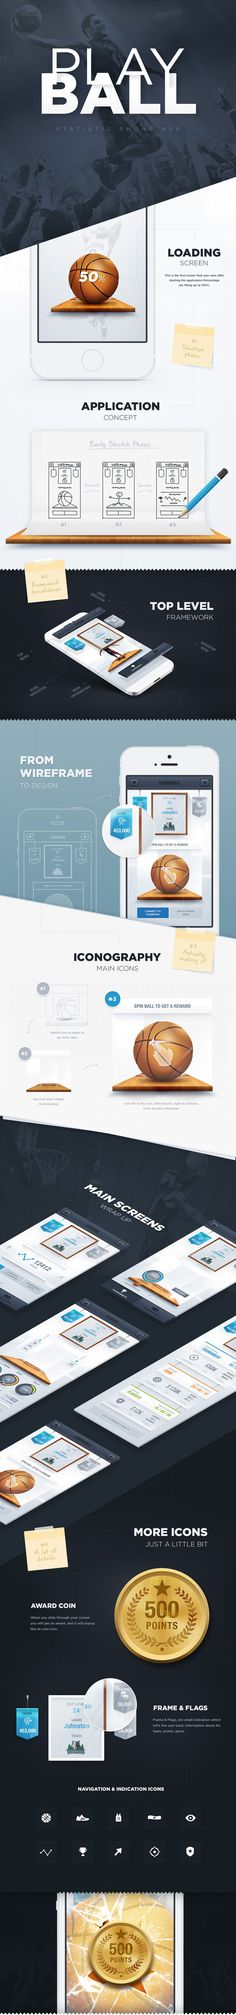 Latest user interface design inspiration for web and mobile, every time we showcase the best websites and mobile interfaces in the world. Mobile Web Design, Web Ui Design, Graphic Design, Iphone App Design, Branding, Ui Design Inspiration, Ui Web, Apps, Behance